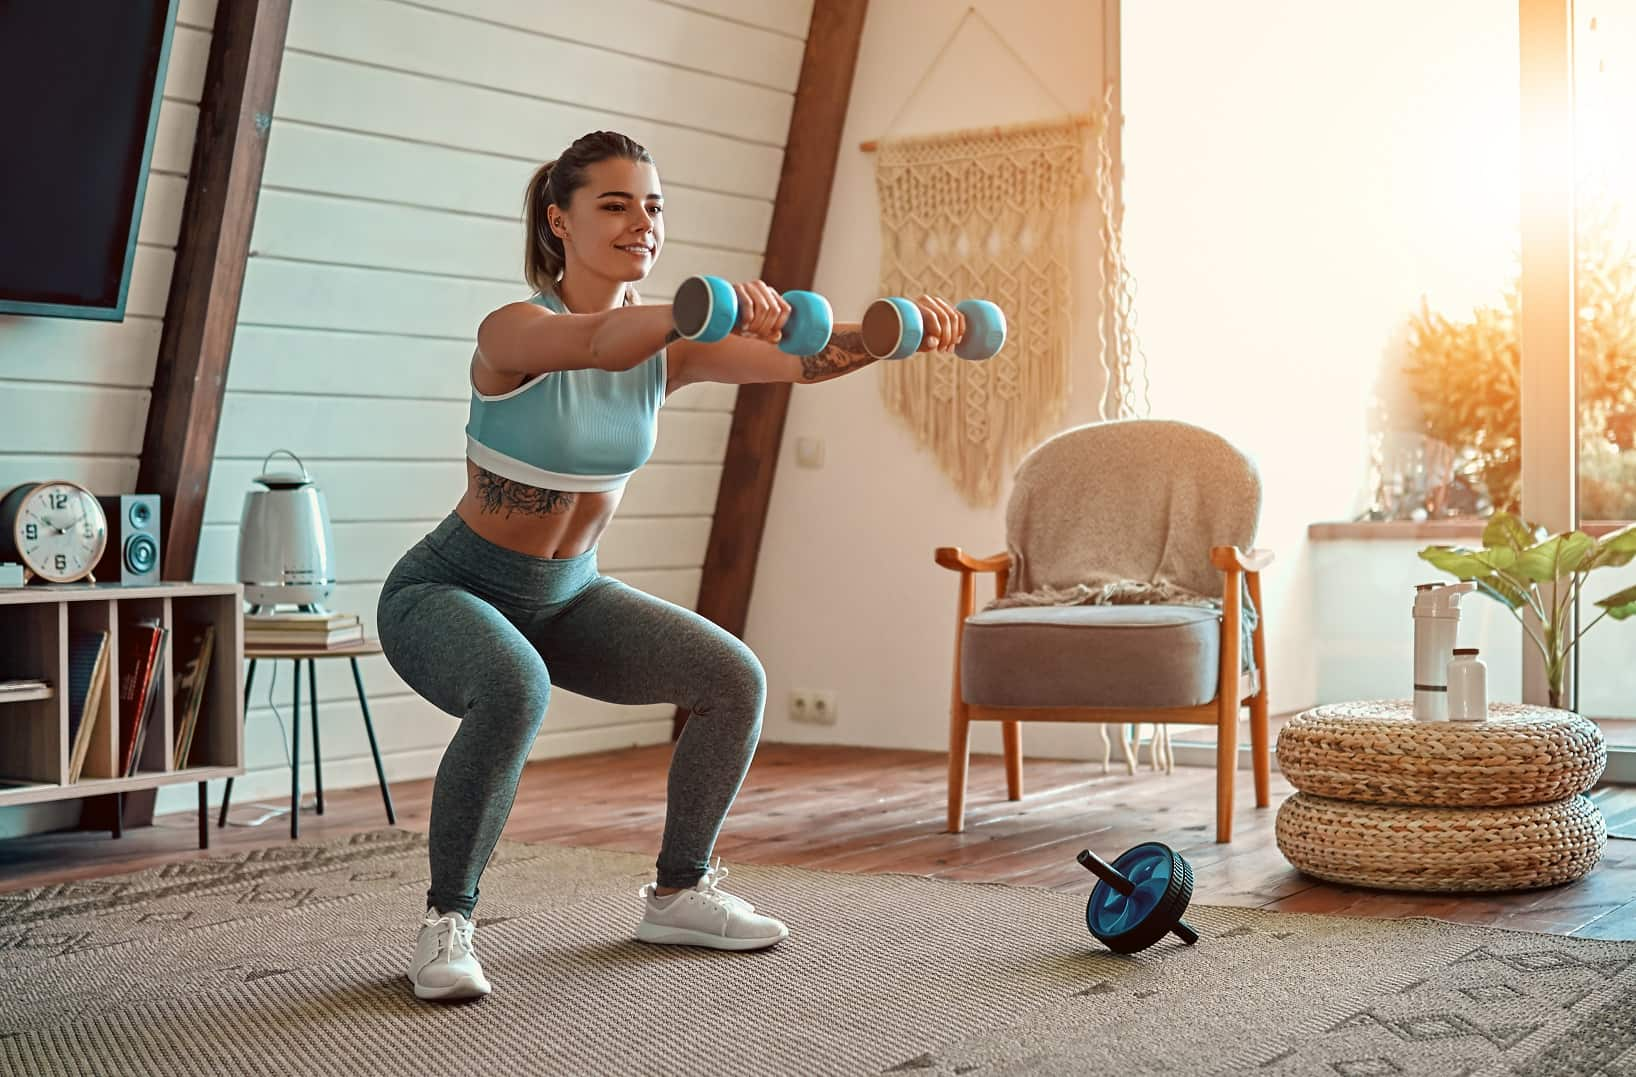 4 Tips to Create a Home Gym Out of a Small Space. A pair of cumbbells and an abdominal wheel can turn any room into small workout area